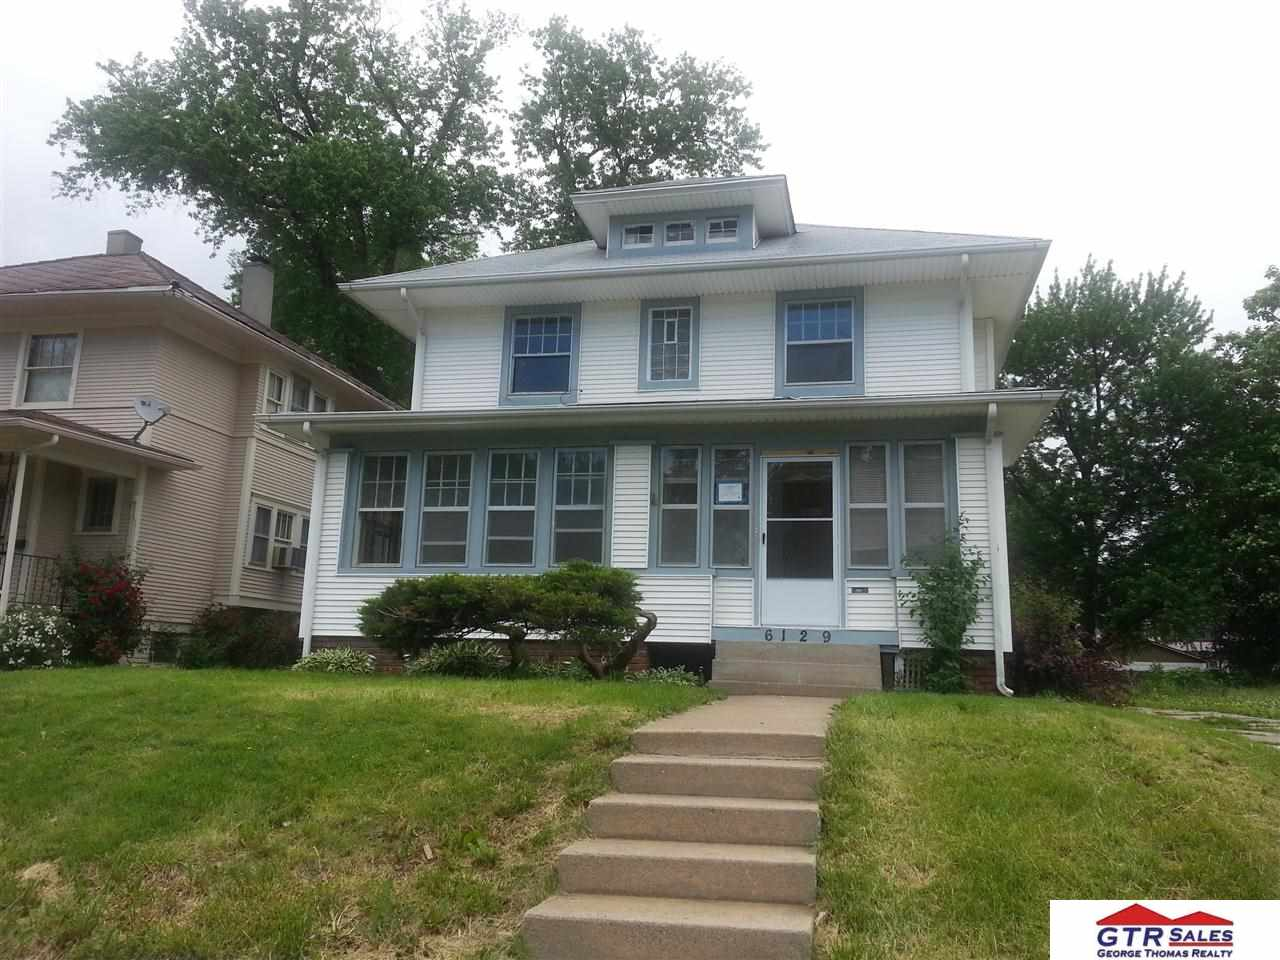 Rental Homes for Rent, ListingId:28543669, location: 6129 N 24 Street Omaha 68110